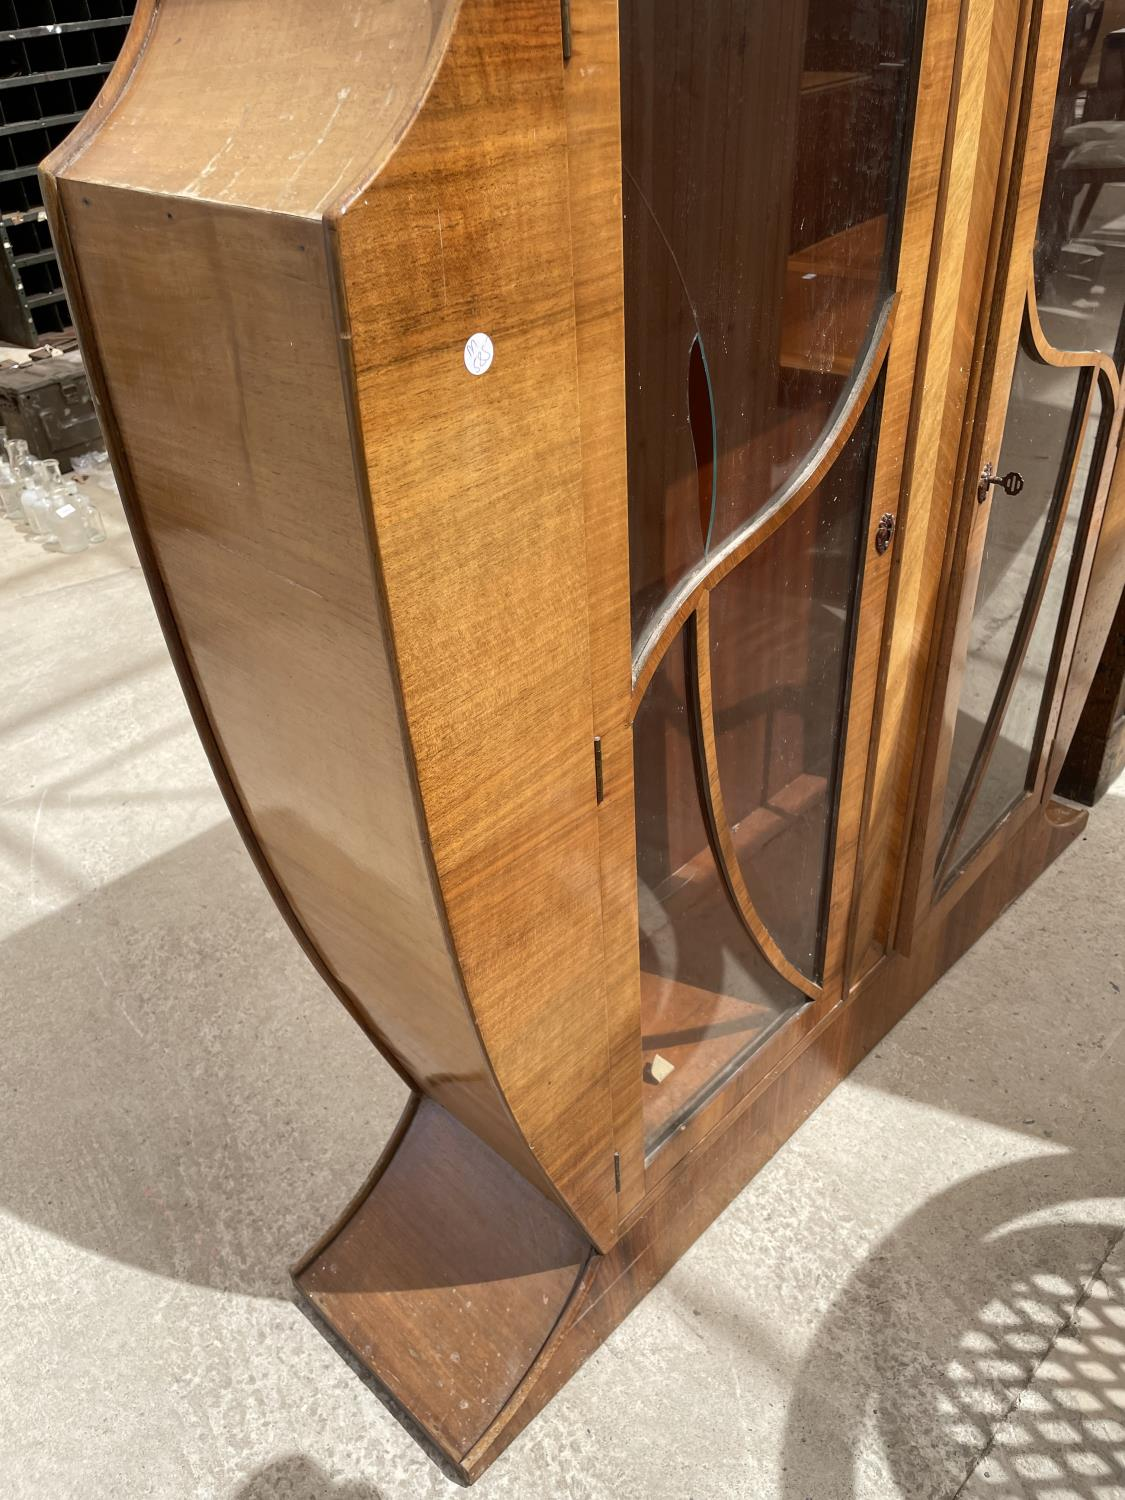 A WALNUT ART DECO STYLE CABINET WITH TWO GLAZED DOORS (AF TO TOP AND ONE PAIN REQUIRES REPLACING) - Image 4 of 7